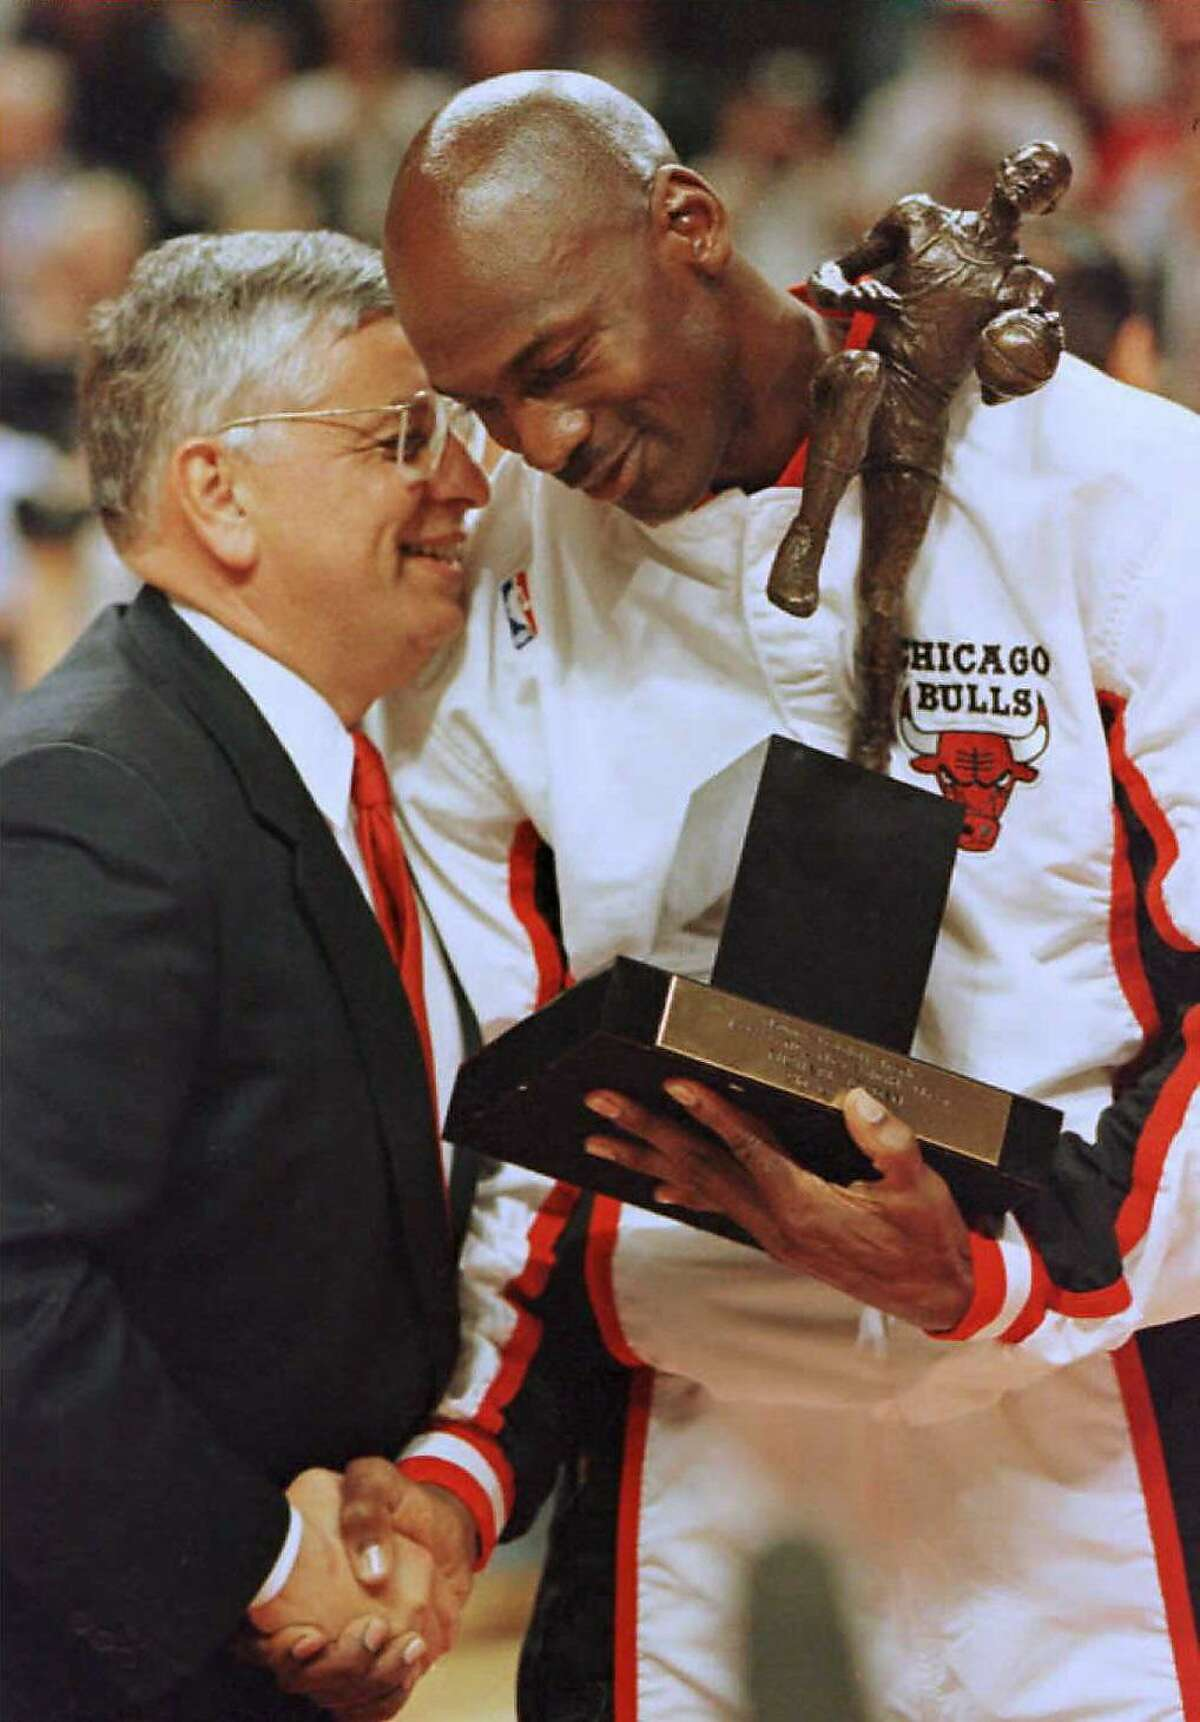 (FILES) In this file photo taken on May 21, 1996 National Basketball Association (NBA) Commisioner David Stern (L) congratulates Chicago Bulls guard Michael Jordan during the 1996 NBA Most Valuable Player trophy presentation. - Magic Johnson and Michael Jordan were among the NBA legends stunned by the death on January 1, 2020 of former league commissioner David Stern following a brain hemorrhage he suffered last month. Stern, who was 77, spent 30 years as commissioner before retiring in 2014 and oversaw the NBA's growth from a league whose finals weren't televised live to a global sport empire with a worldwide following and talent. (Photo by BRIAN BAHR / AFP) (Photo by BRIAN BAHR/AFP via Getty Images)